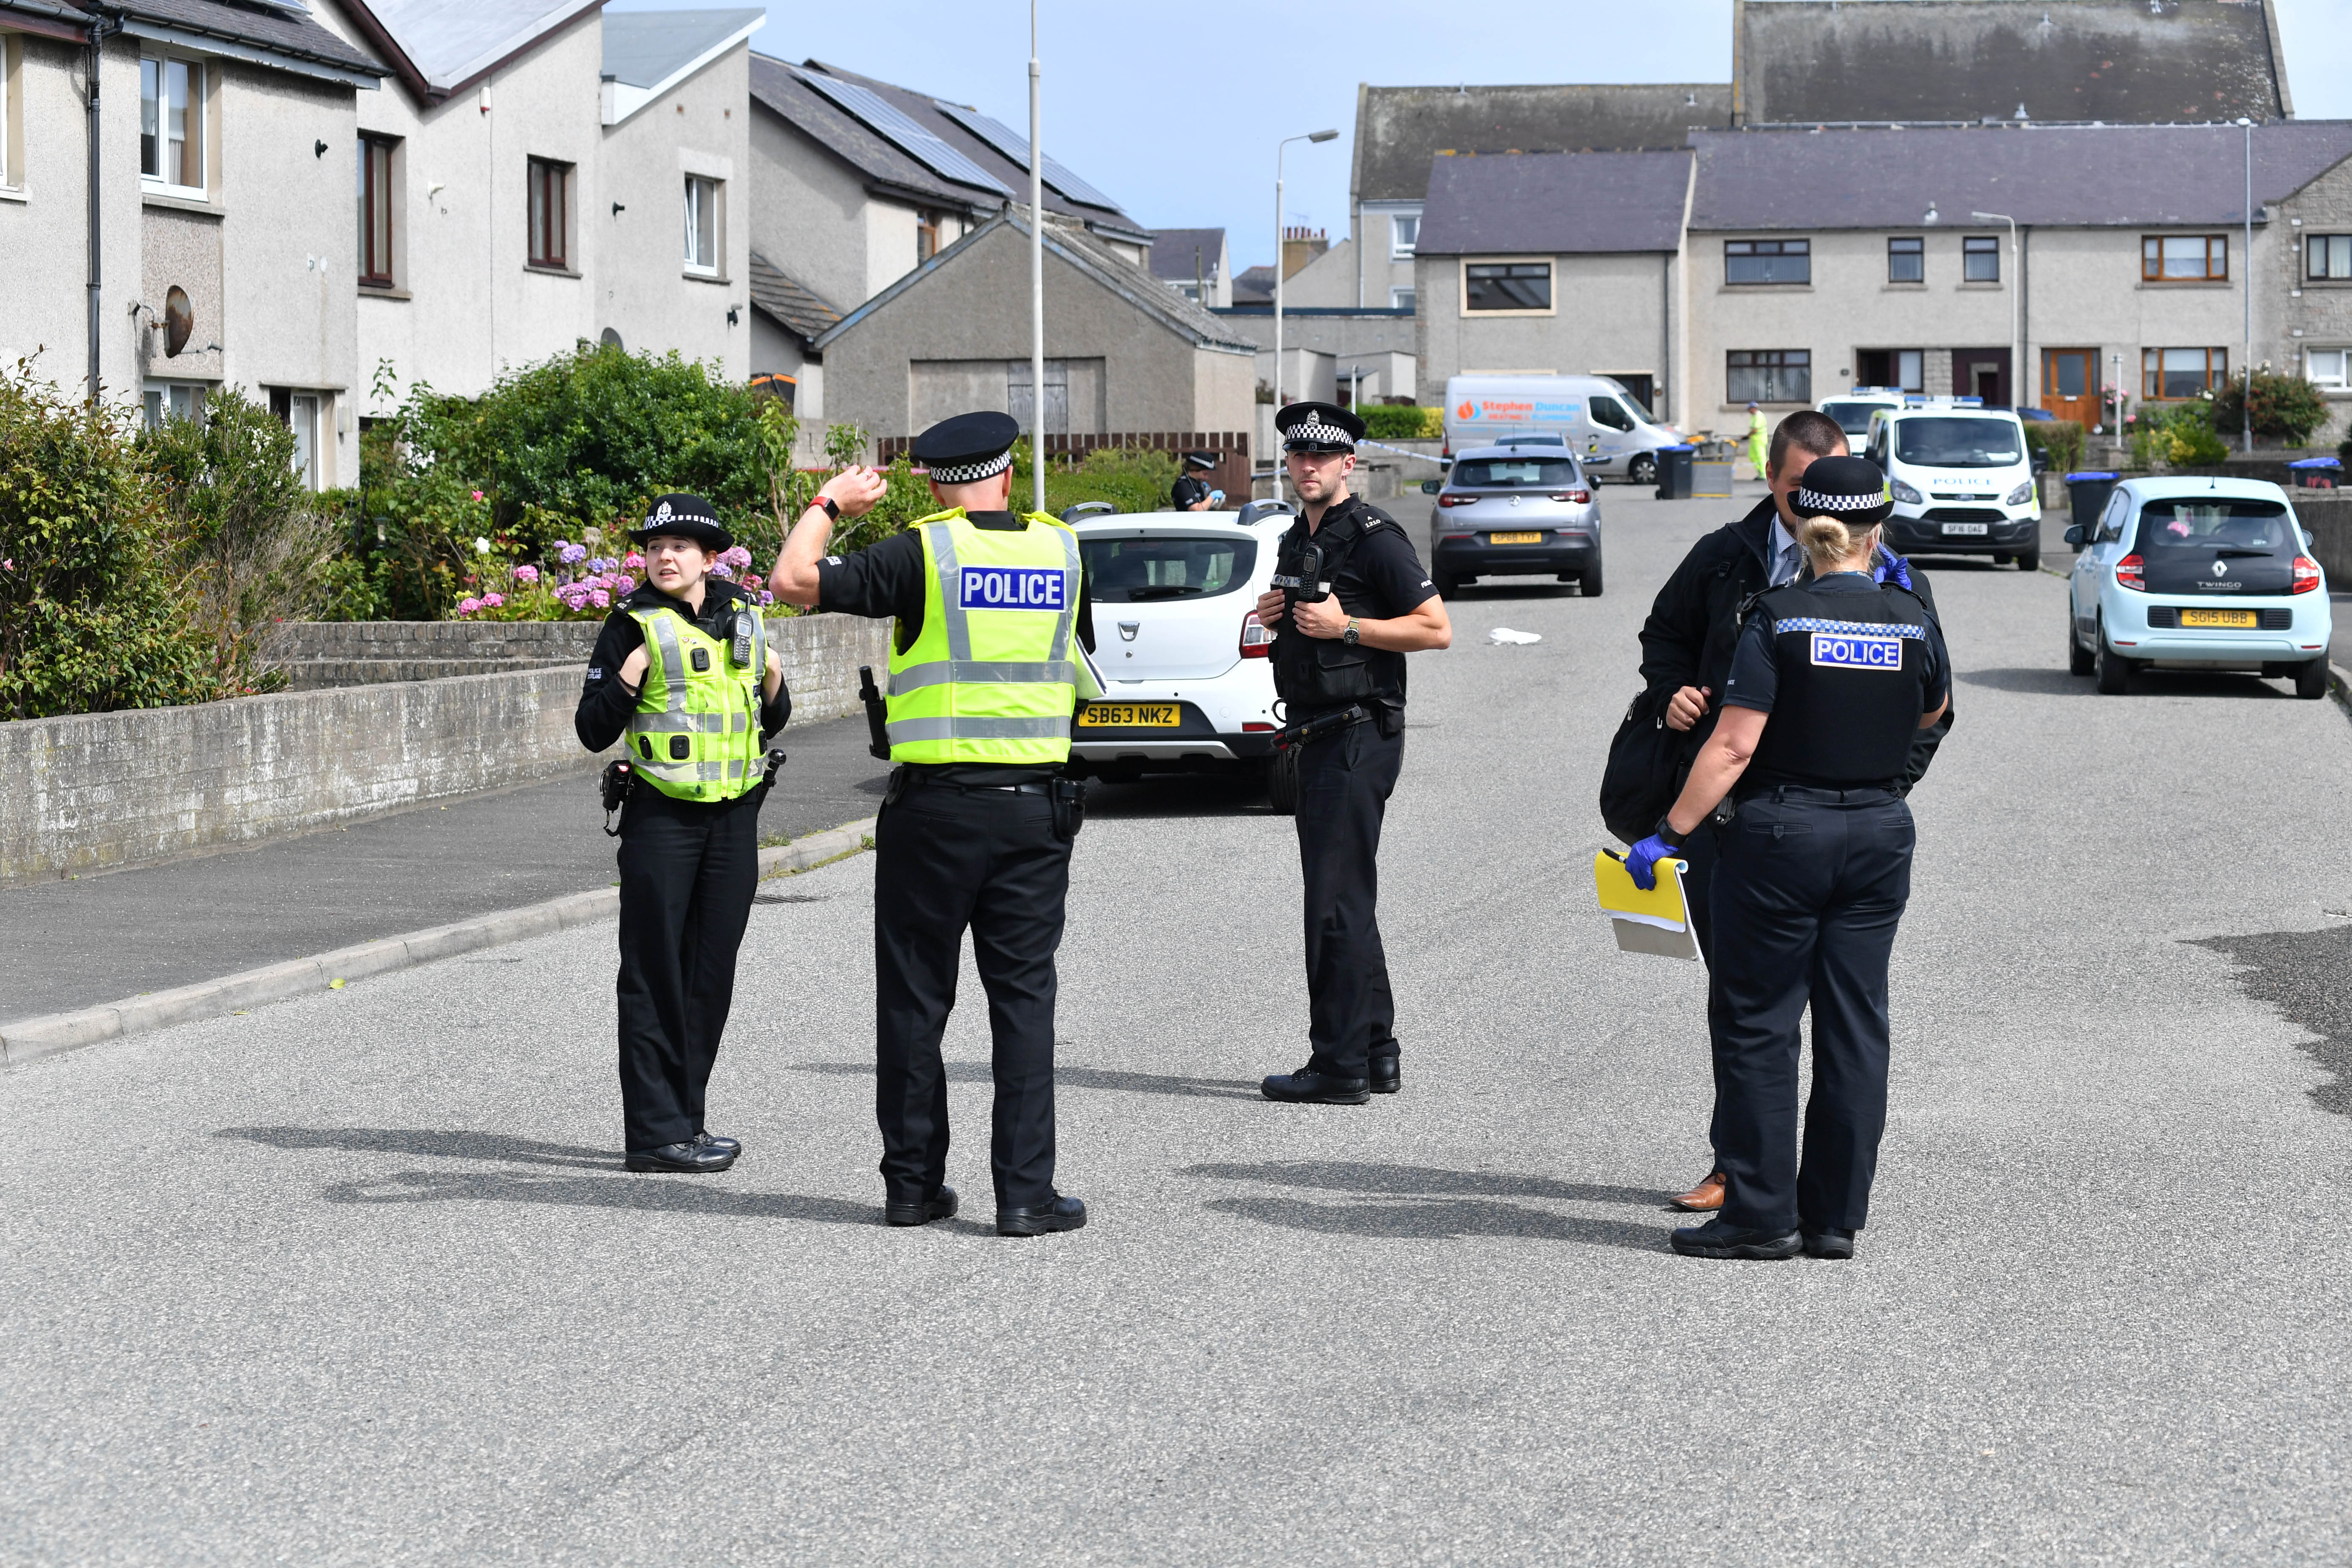 Police at the scene of the incident on Chapelhill Road in Fraserburgh